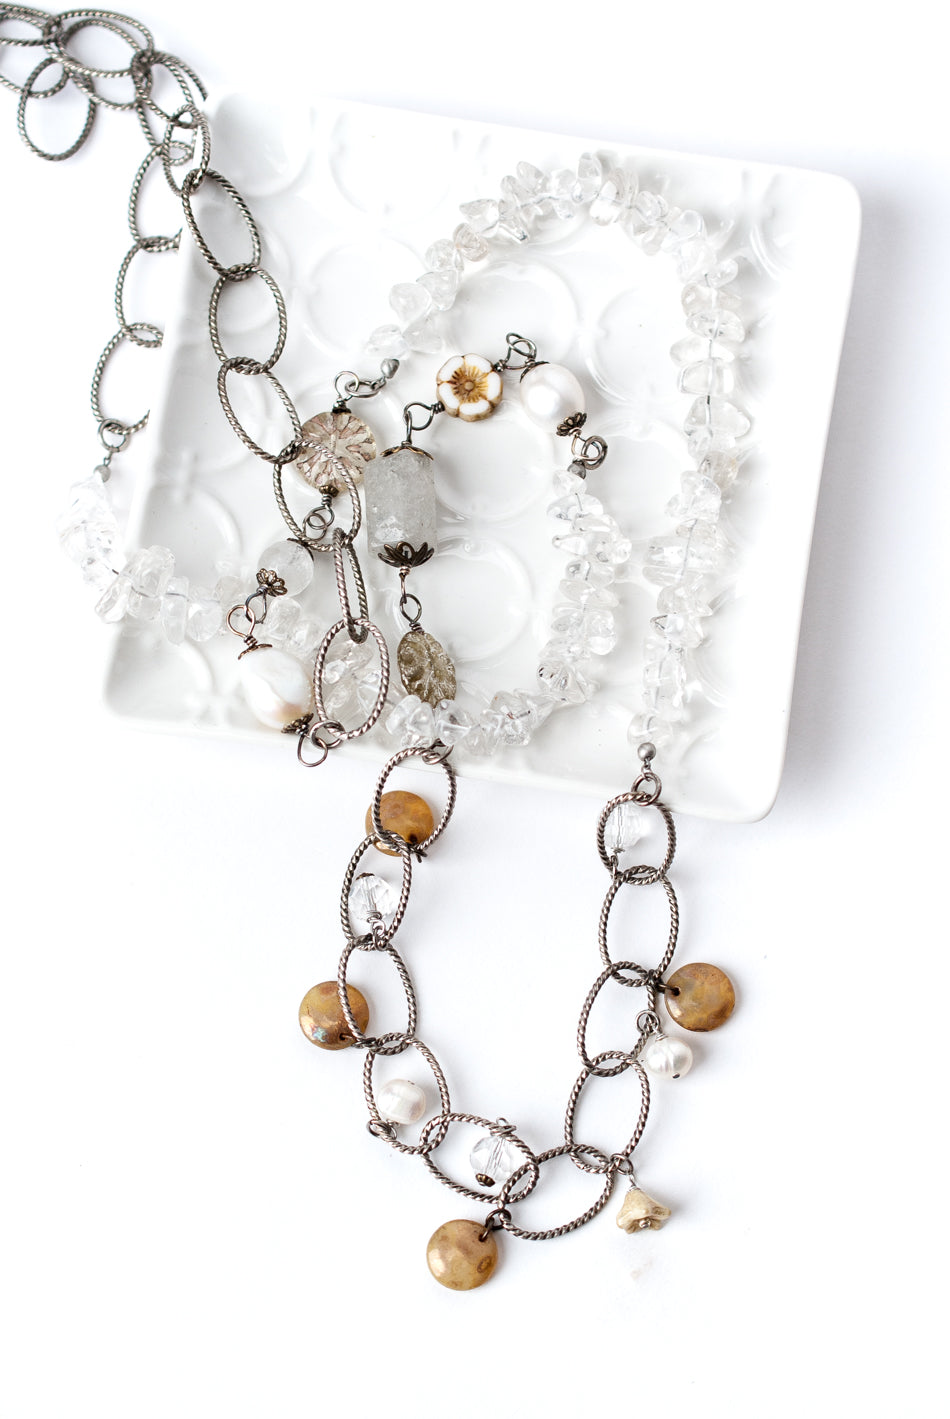 "*Tundra 45"" Quartz Collage Necklace"